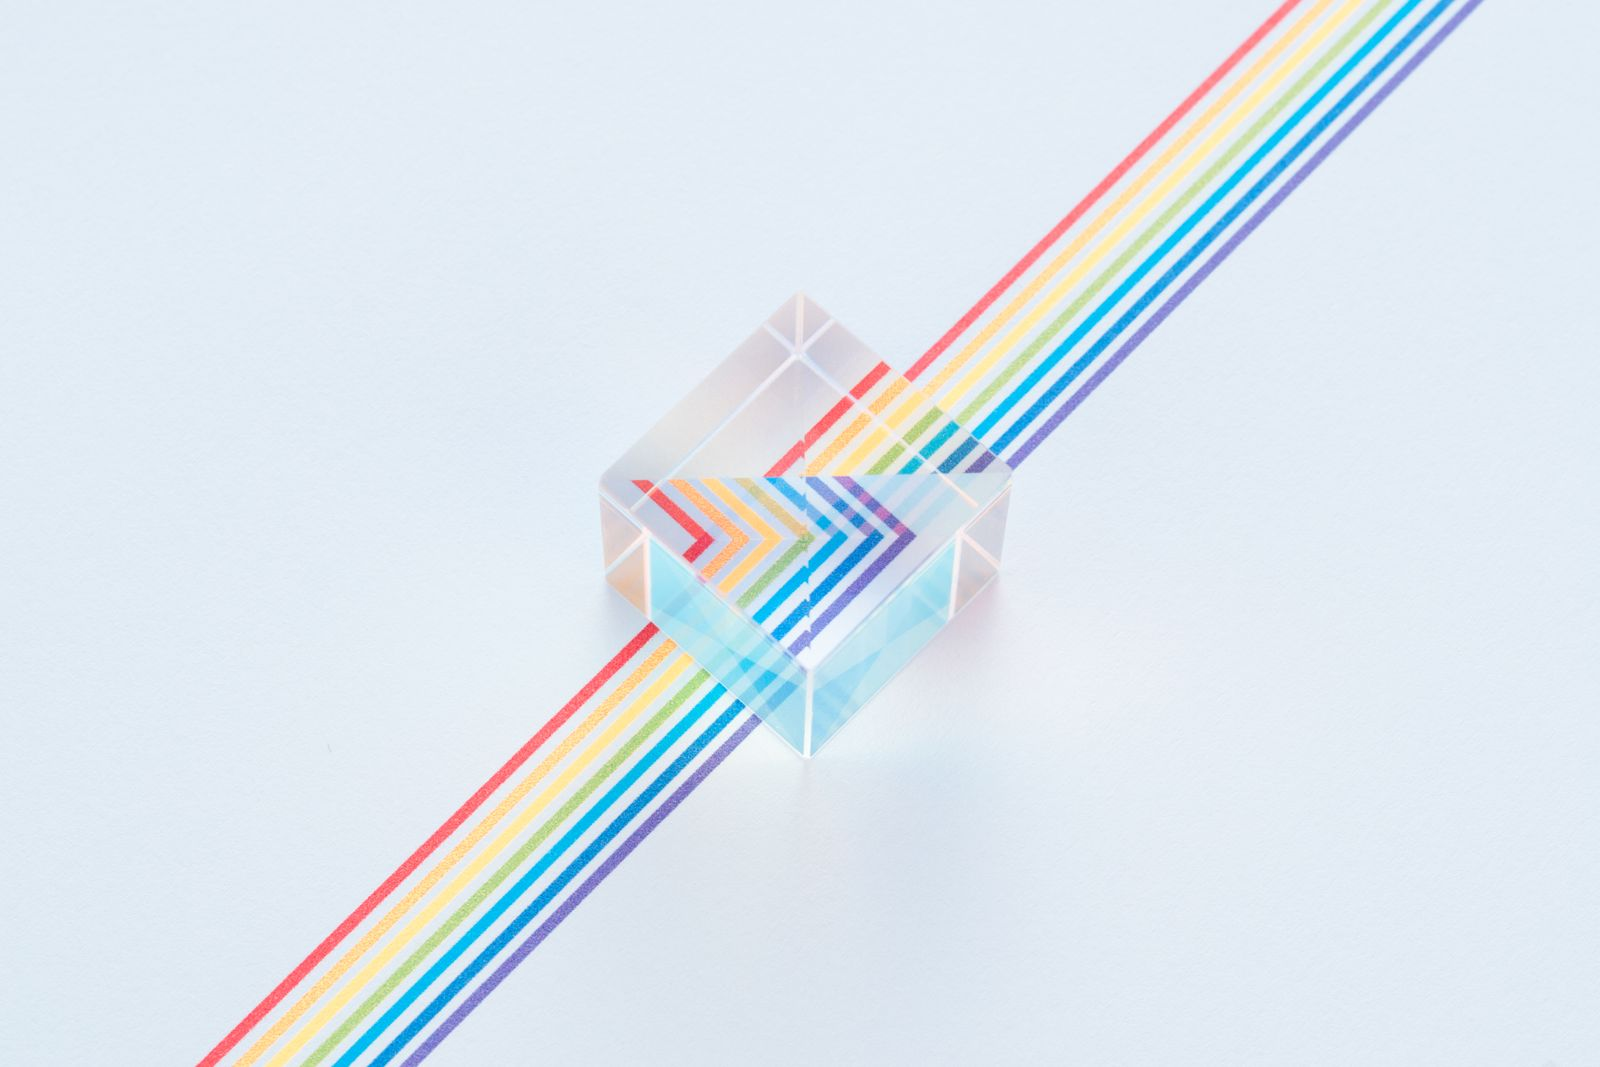 Prism on Colorful Lines